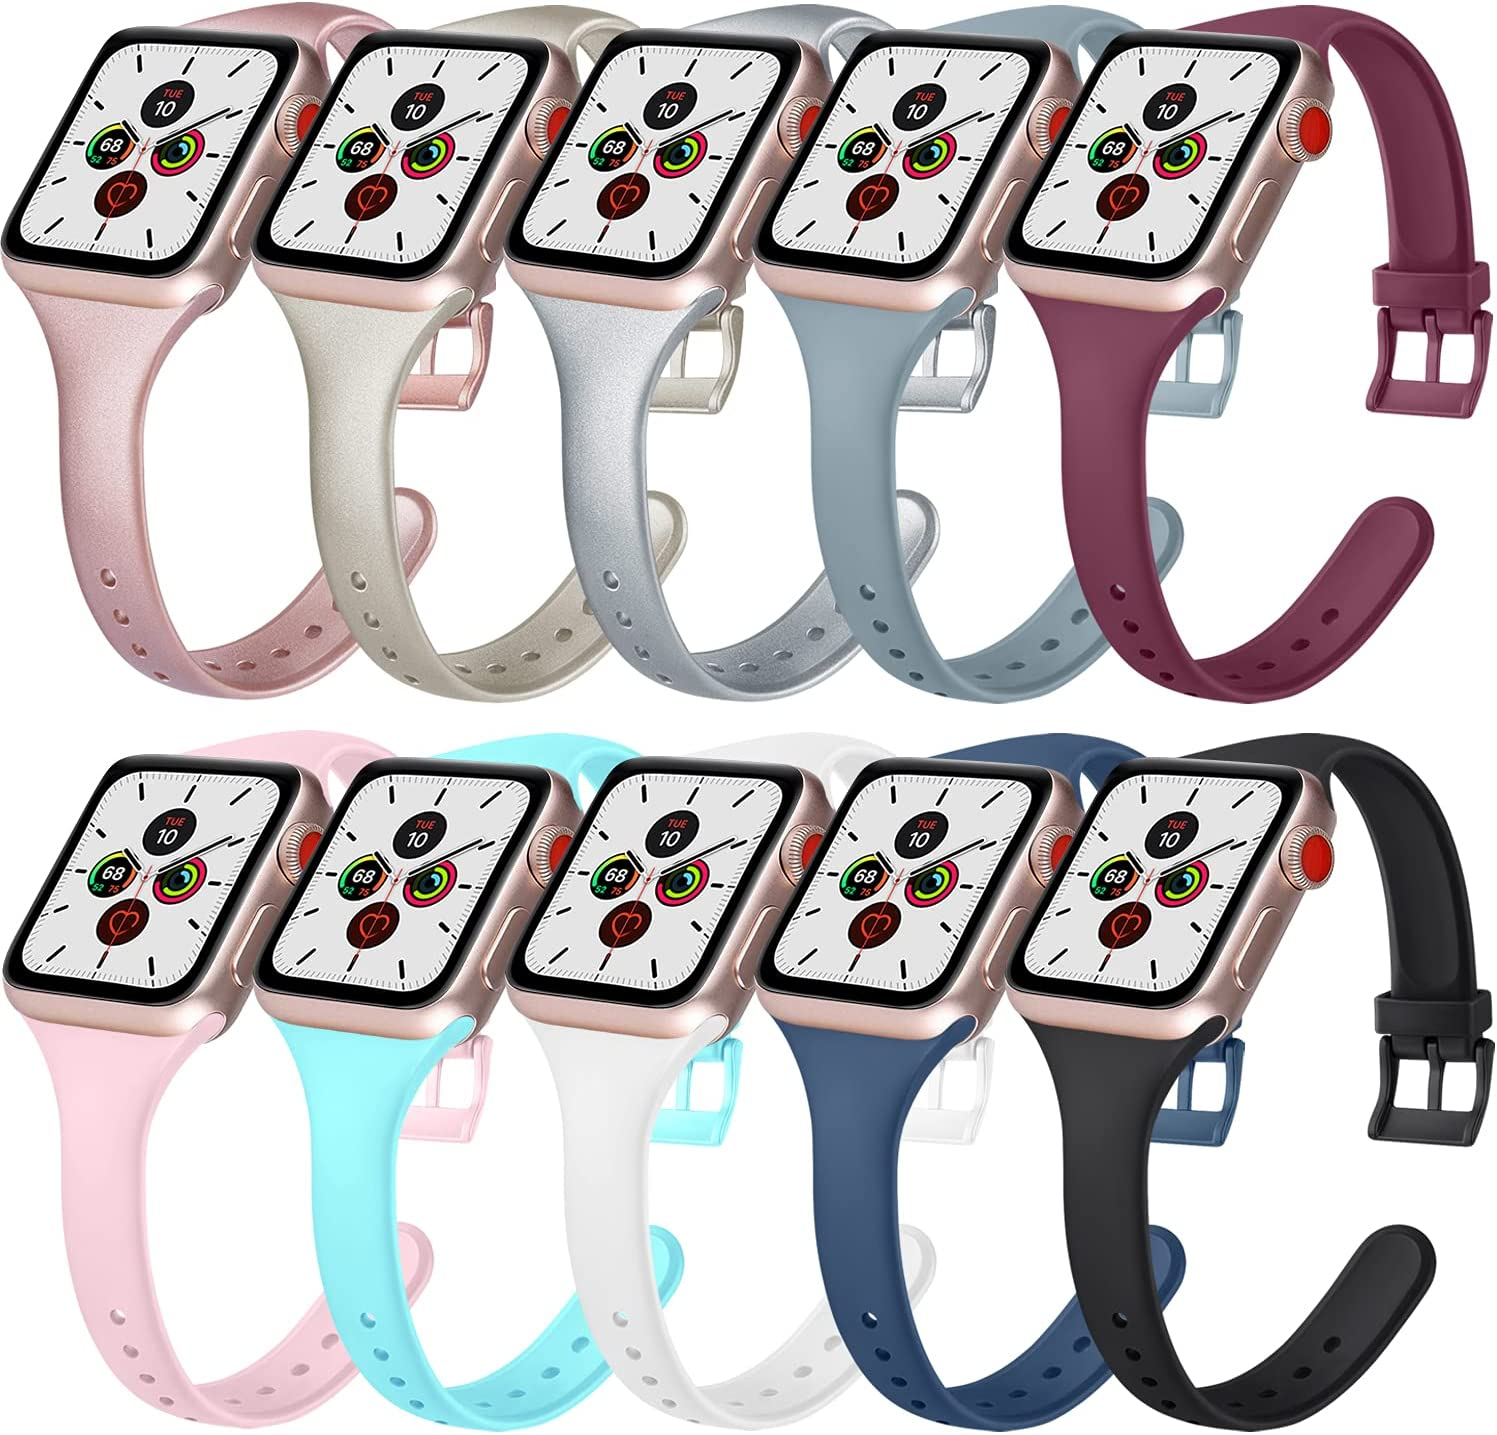 10 Pack Silicone Bands Compatible with Apple Watch Band 38mm 42mm 40mm 44mm, Soft Silicone Slim Narrow Band Compatible with iWatch Series 6 5 4 3 2 1 SE(10 Colors,38mm/40mm M/L)